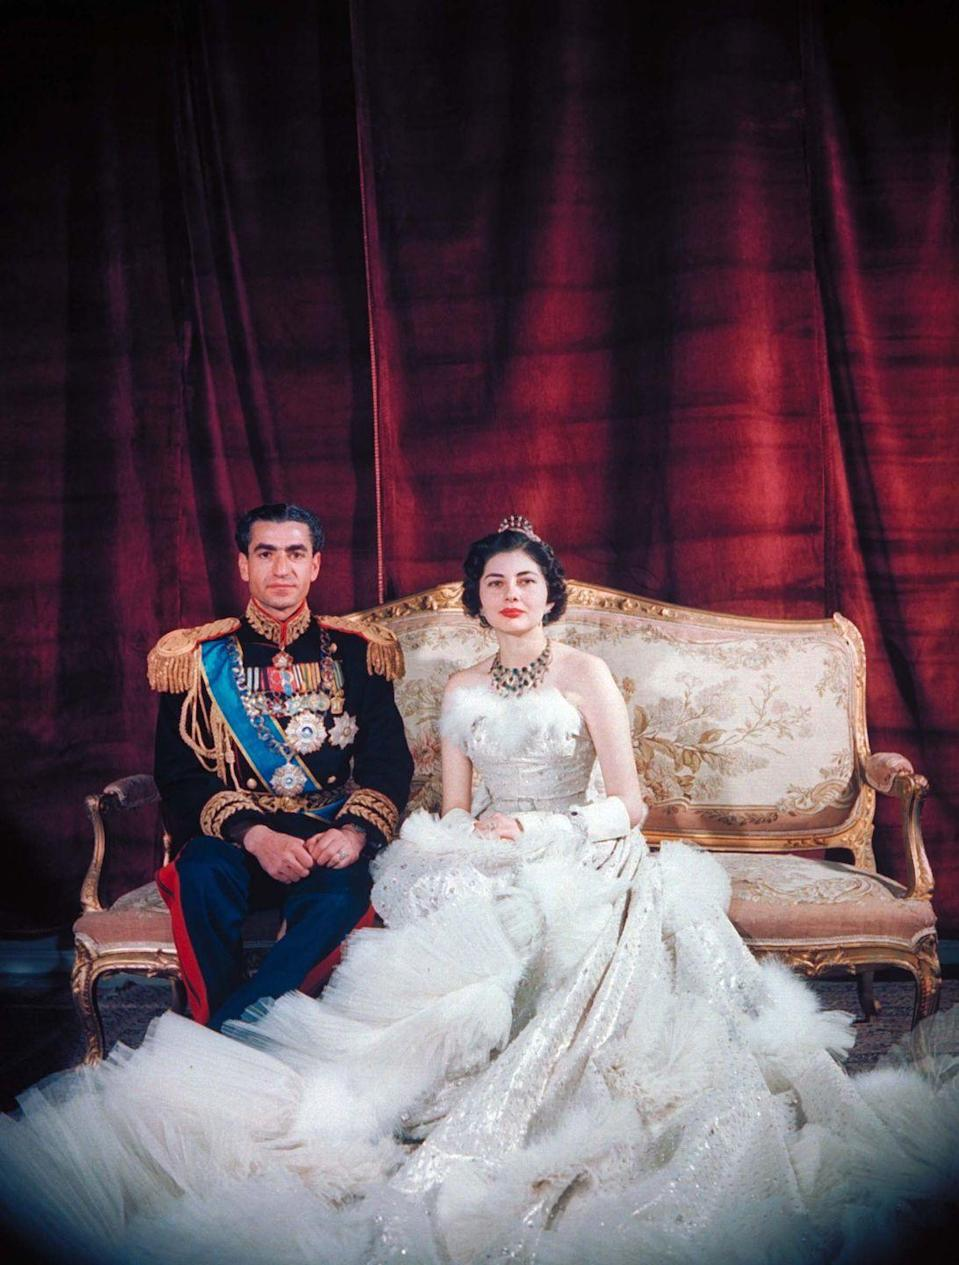 <p>For her wedding to Shah Mohammed Reza Pahlevi, Soraya wore a bespoke dress by Christian Dior made with white silk, gold embroidery, and tulle. The dress reportedly weighed more than 60 pounds. </p>